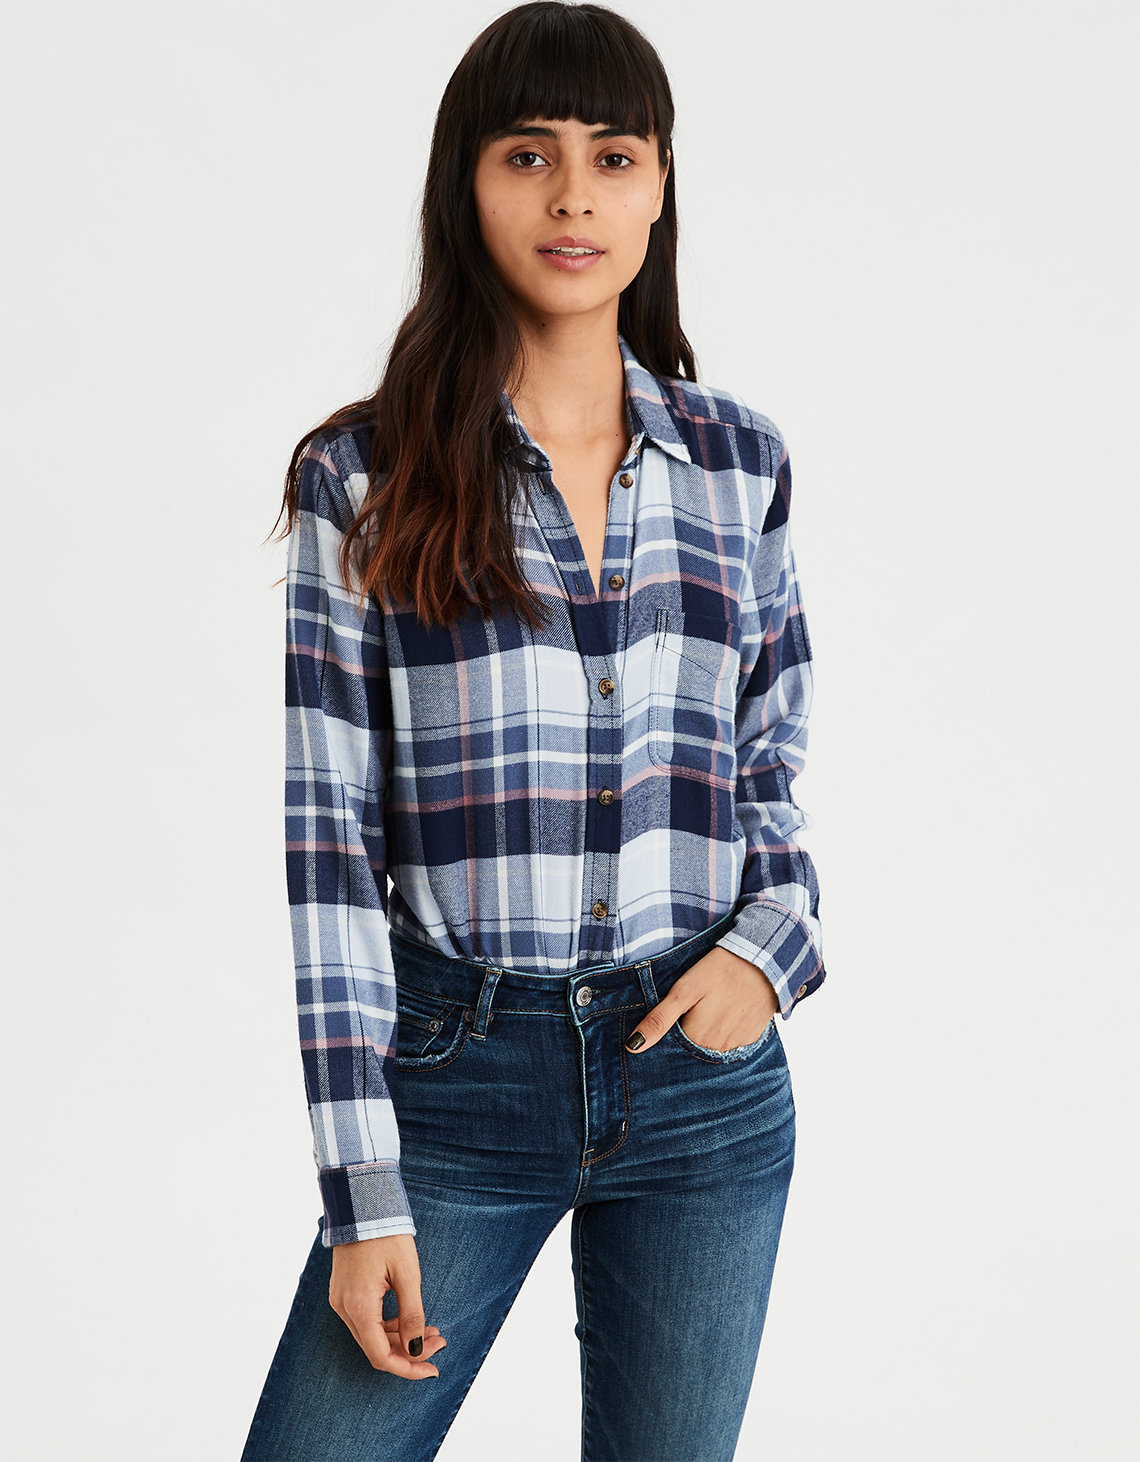 76710c0f6c AE Ahhmazingly Soft Plaid Boyfriend Button-Down. Placeholder image. Product  Image